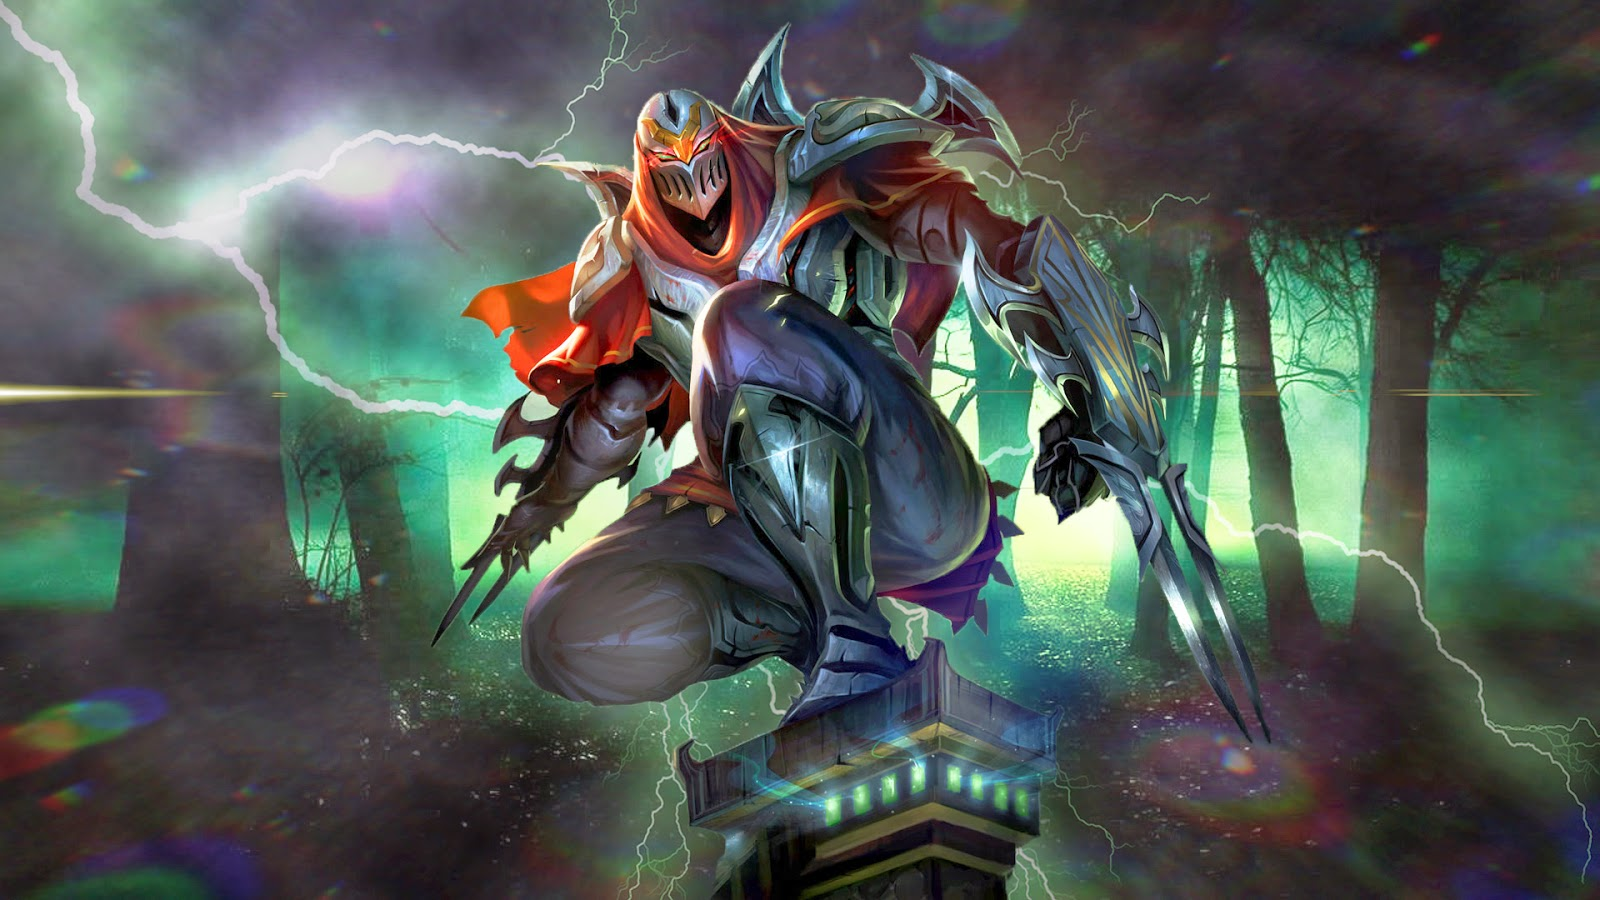 Zed League of Legends Wallpaper, Zed Desktop Wallpaper